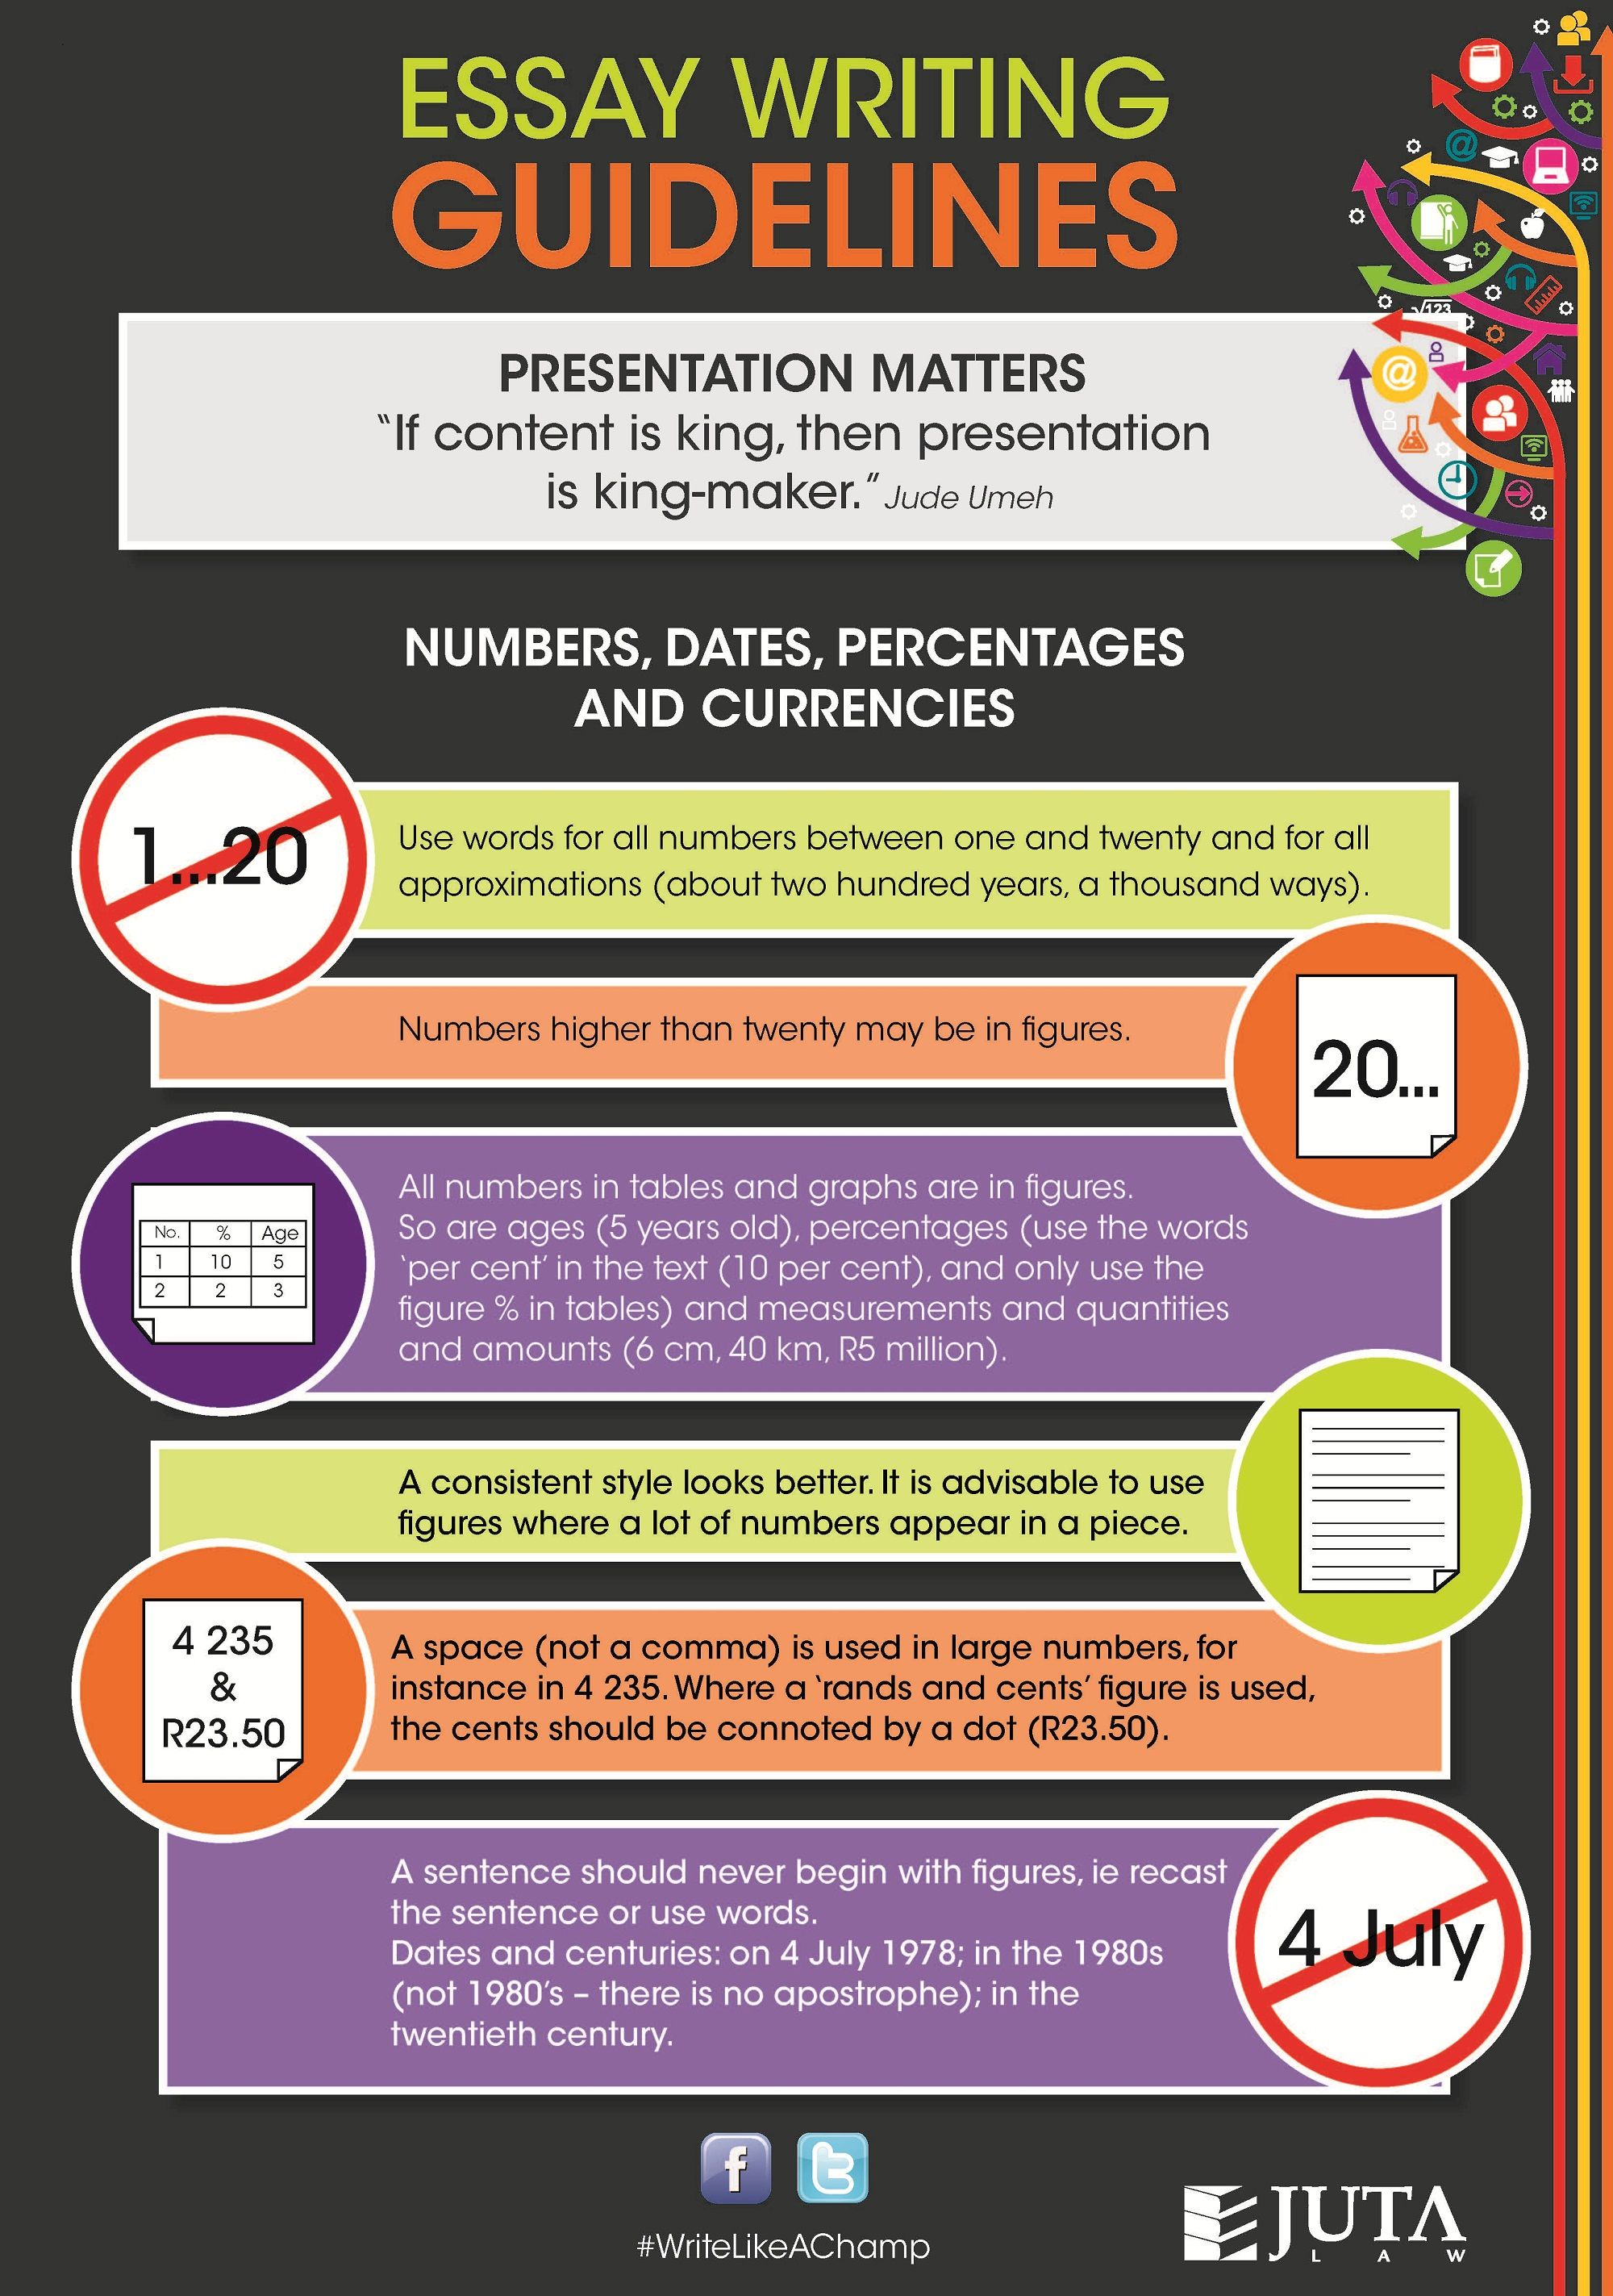 when writing an essay presentation matters here is how to make infographic on numbers dates percentages and currencies guidelines writelikeachamp